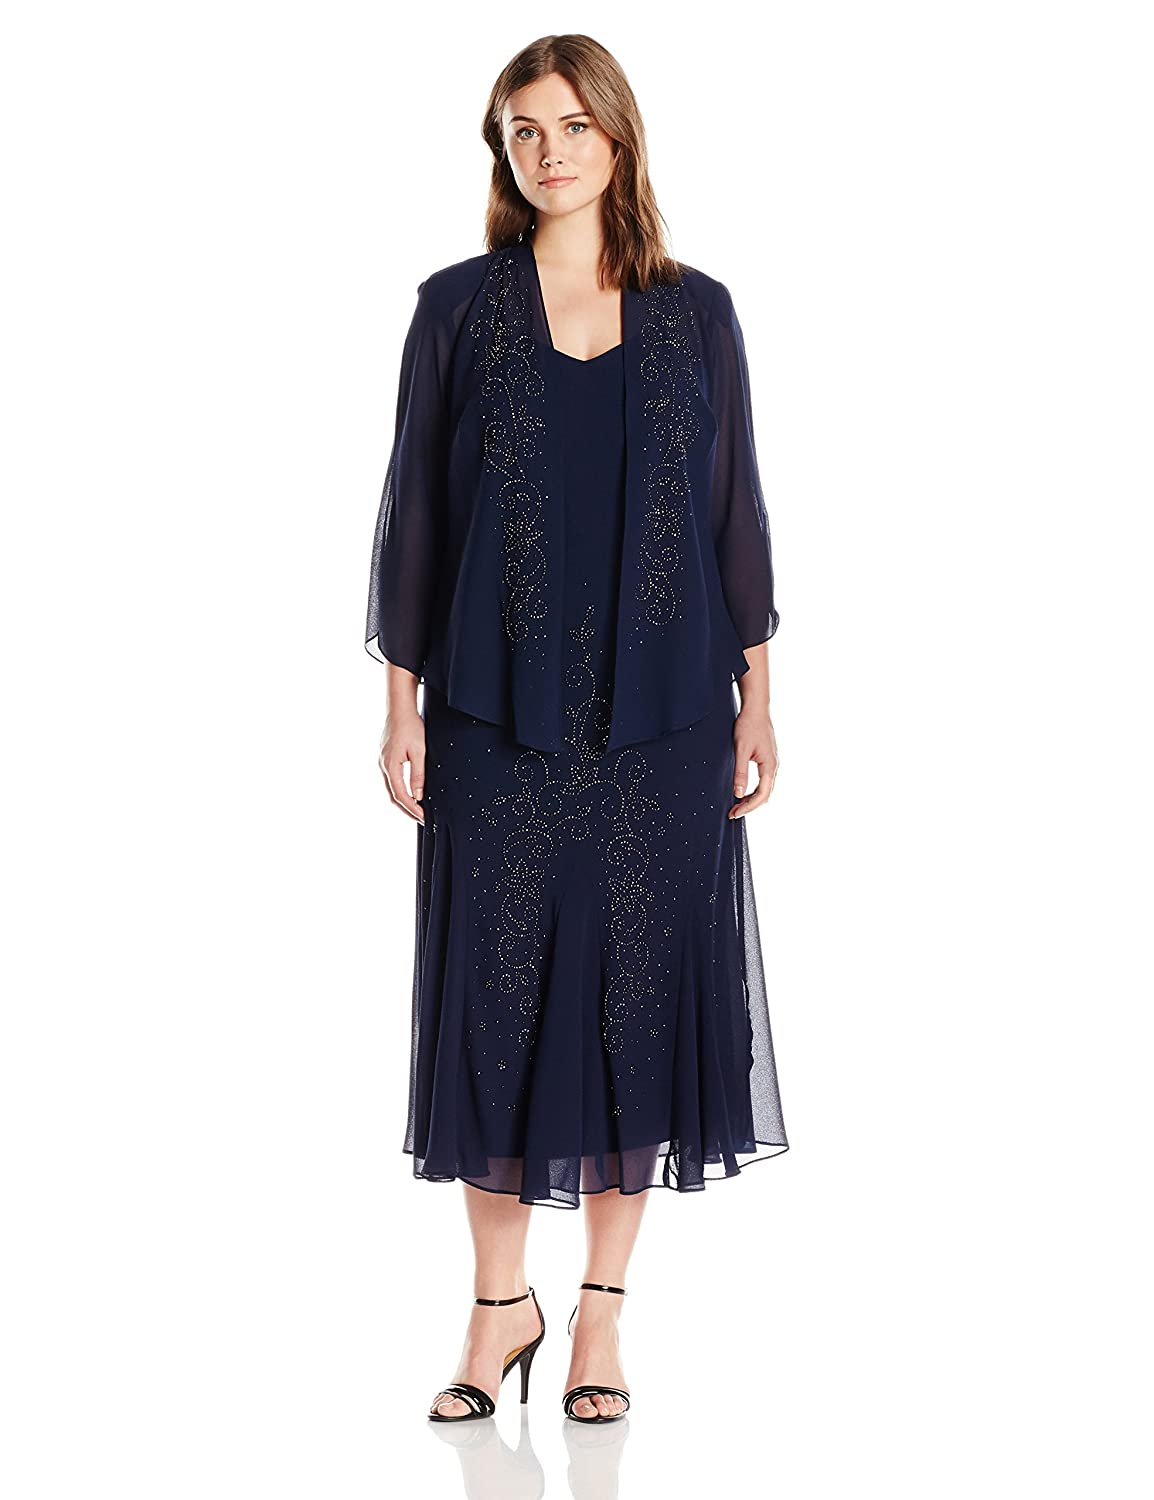 Great Gatsby Dress – Great Gatsby Dresses for Sale R&M Richards Womens Plus Size Beaded Chiffon Jacket Dress $139.00 AT vintagedancer.com